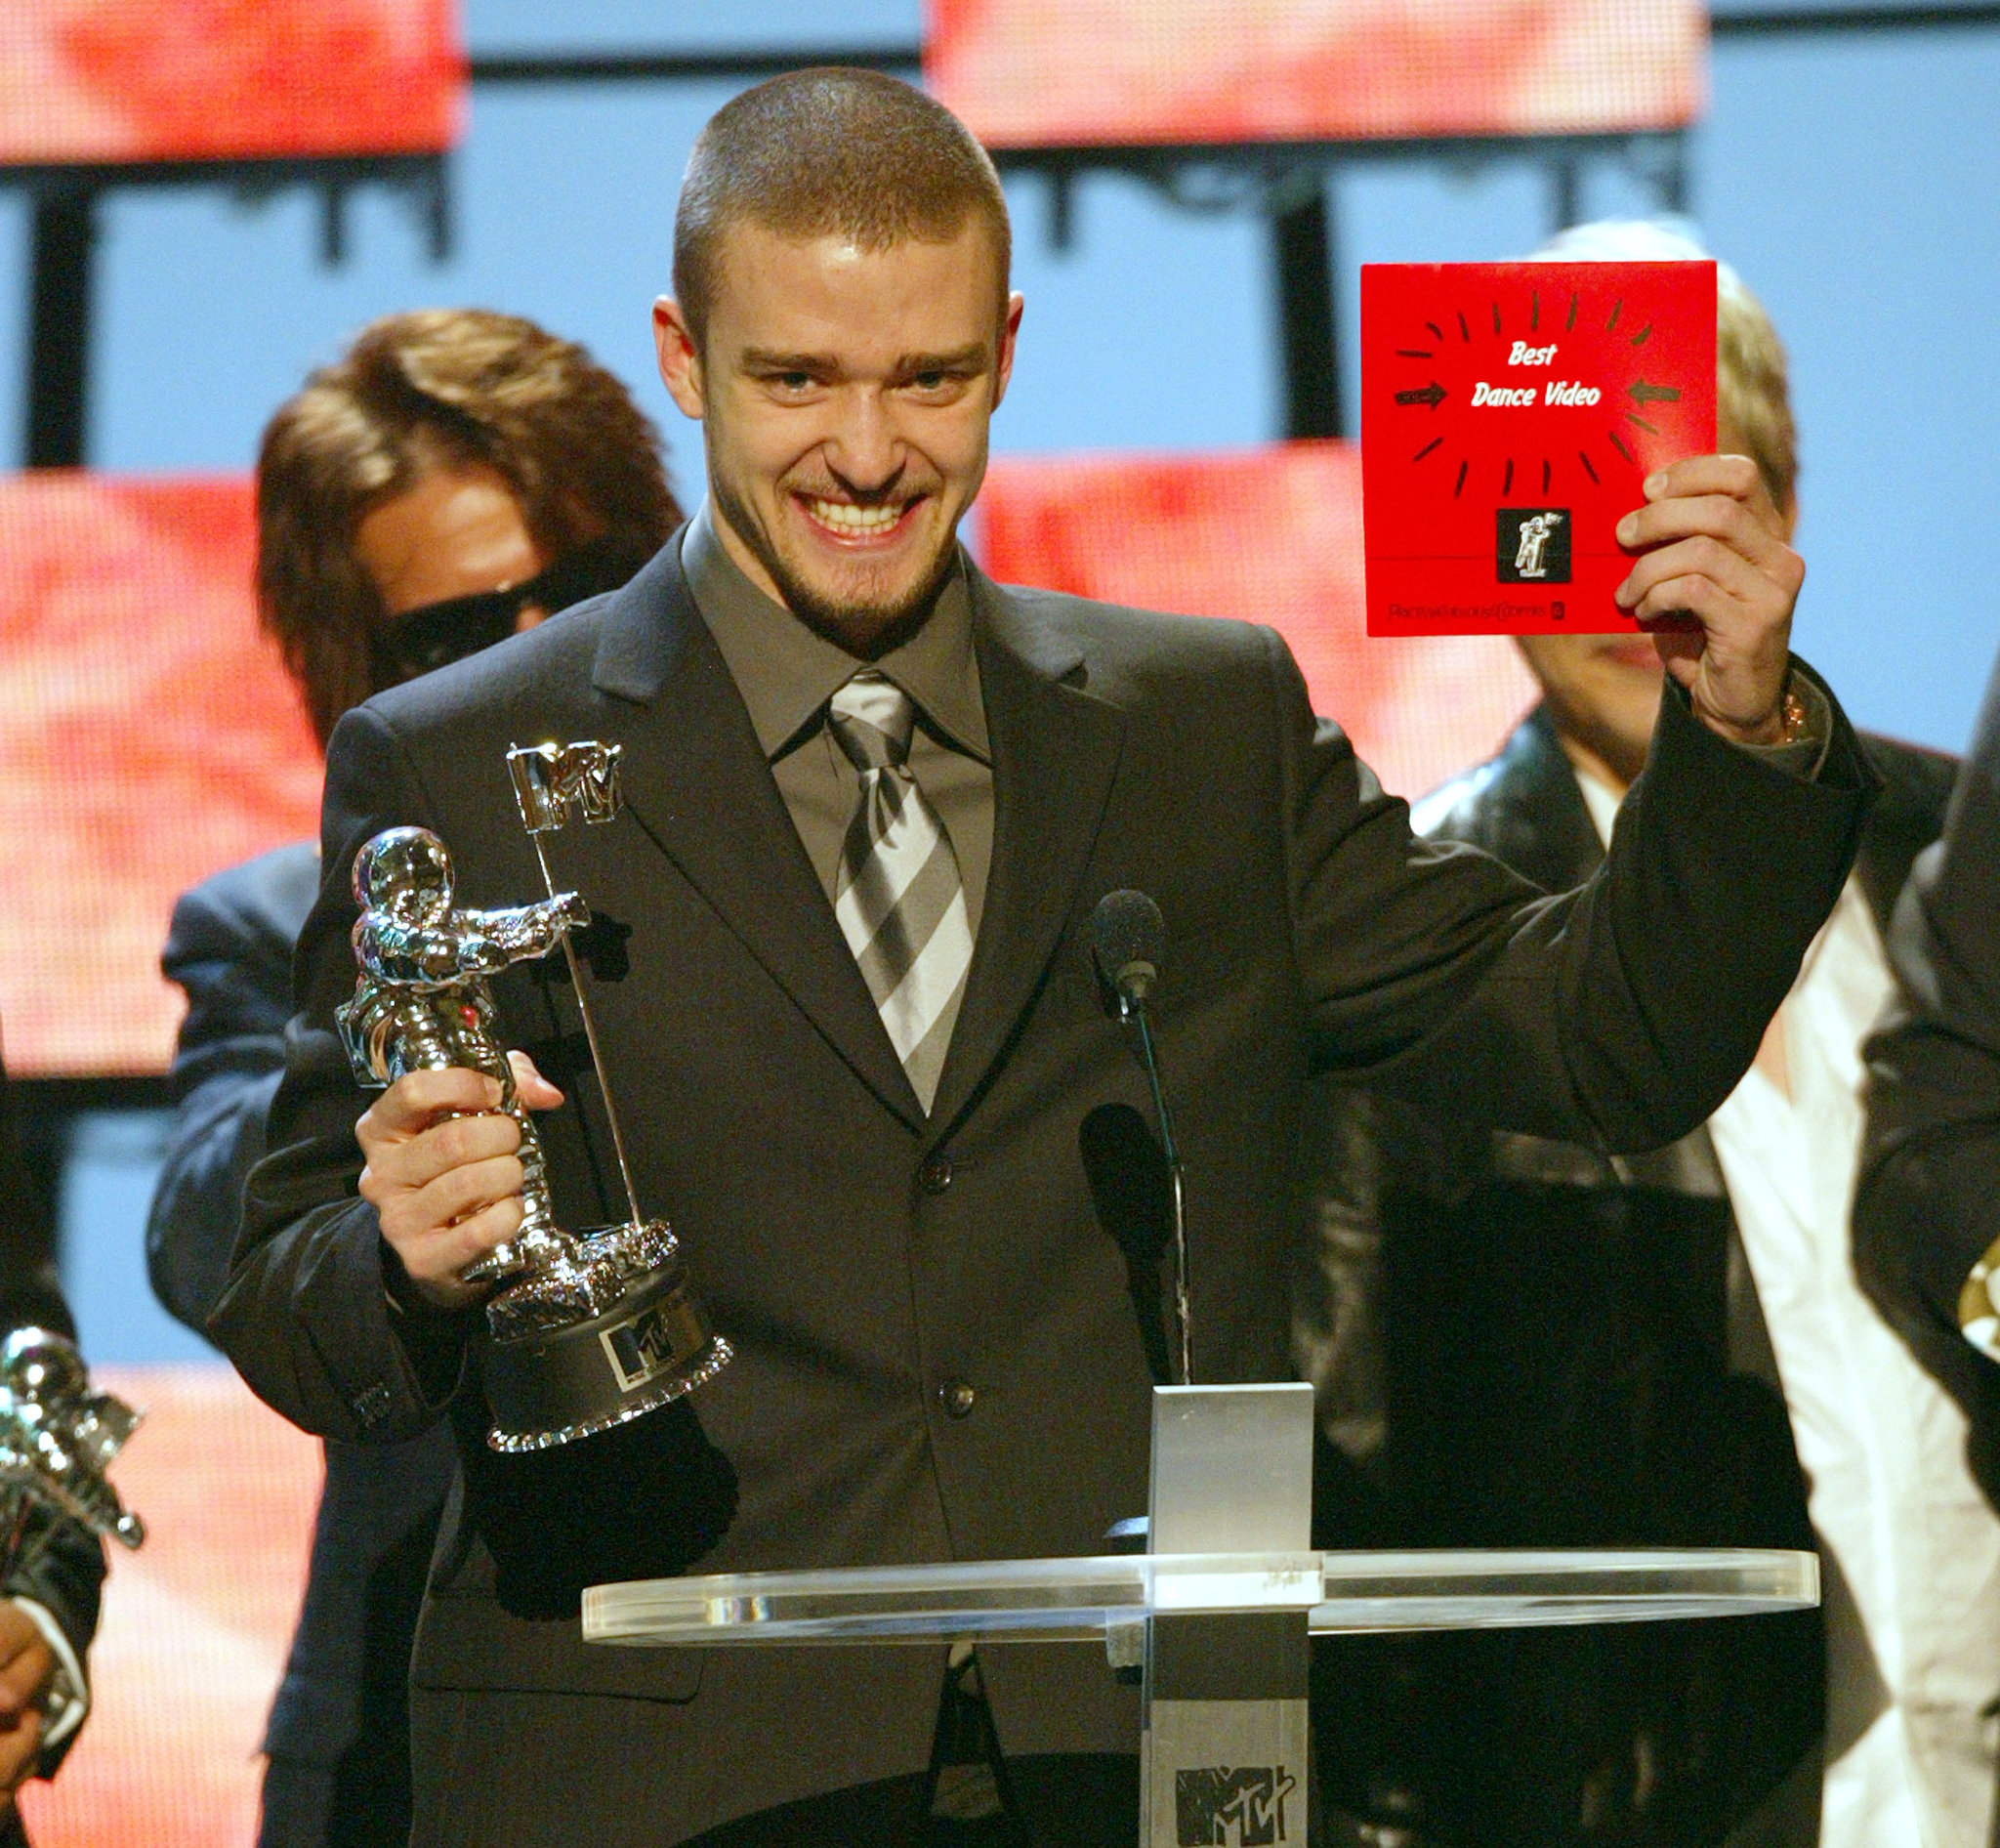 When he was adorably proud at the 2003 MTV VMAs.